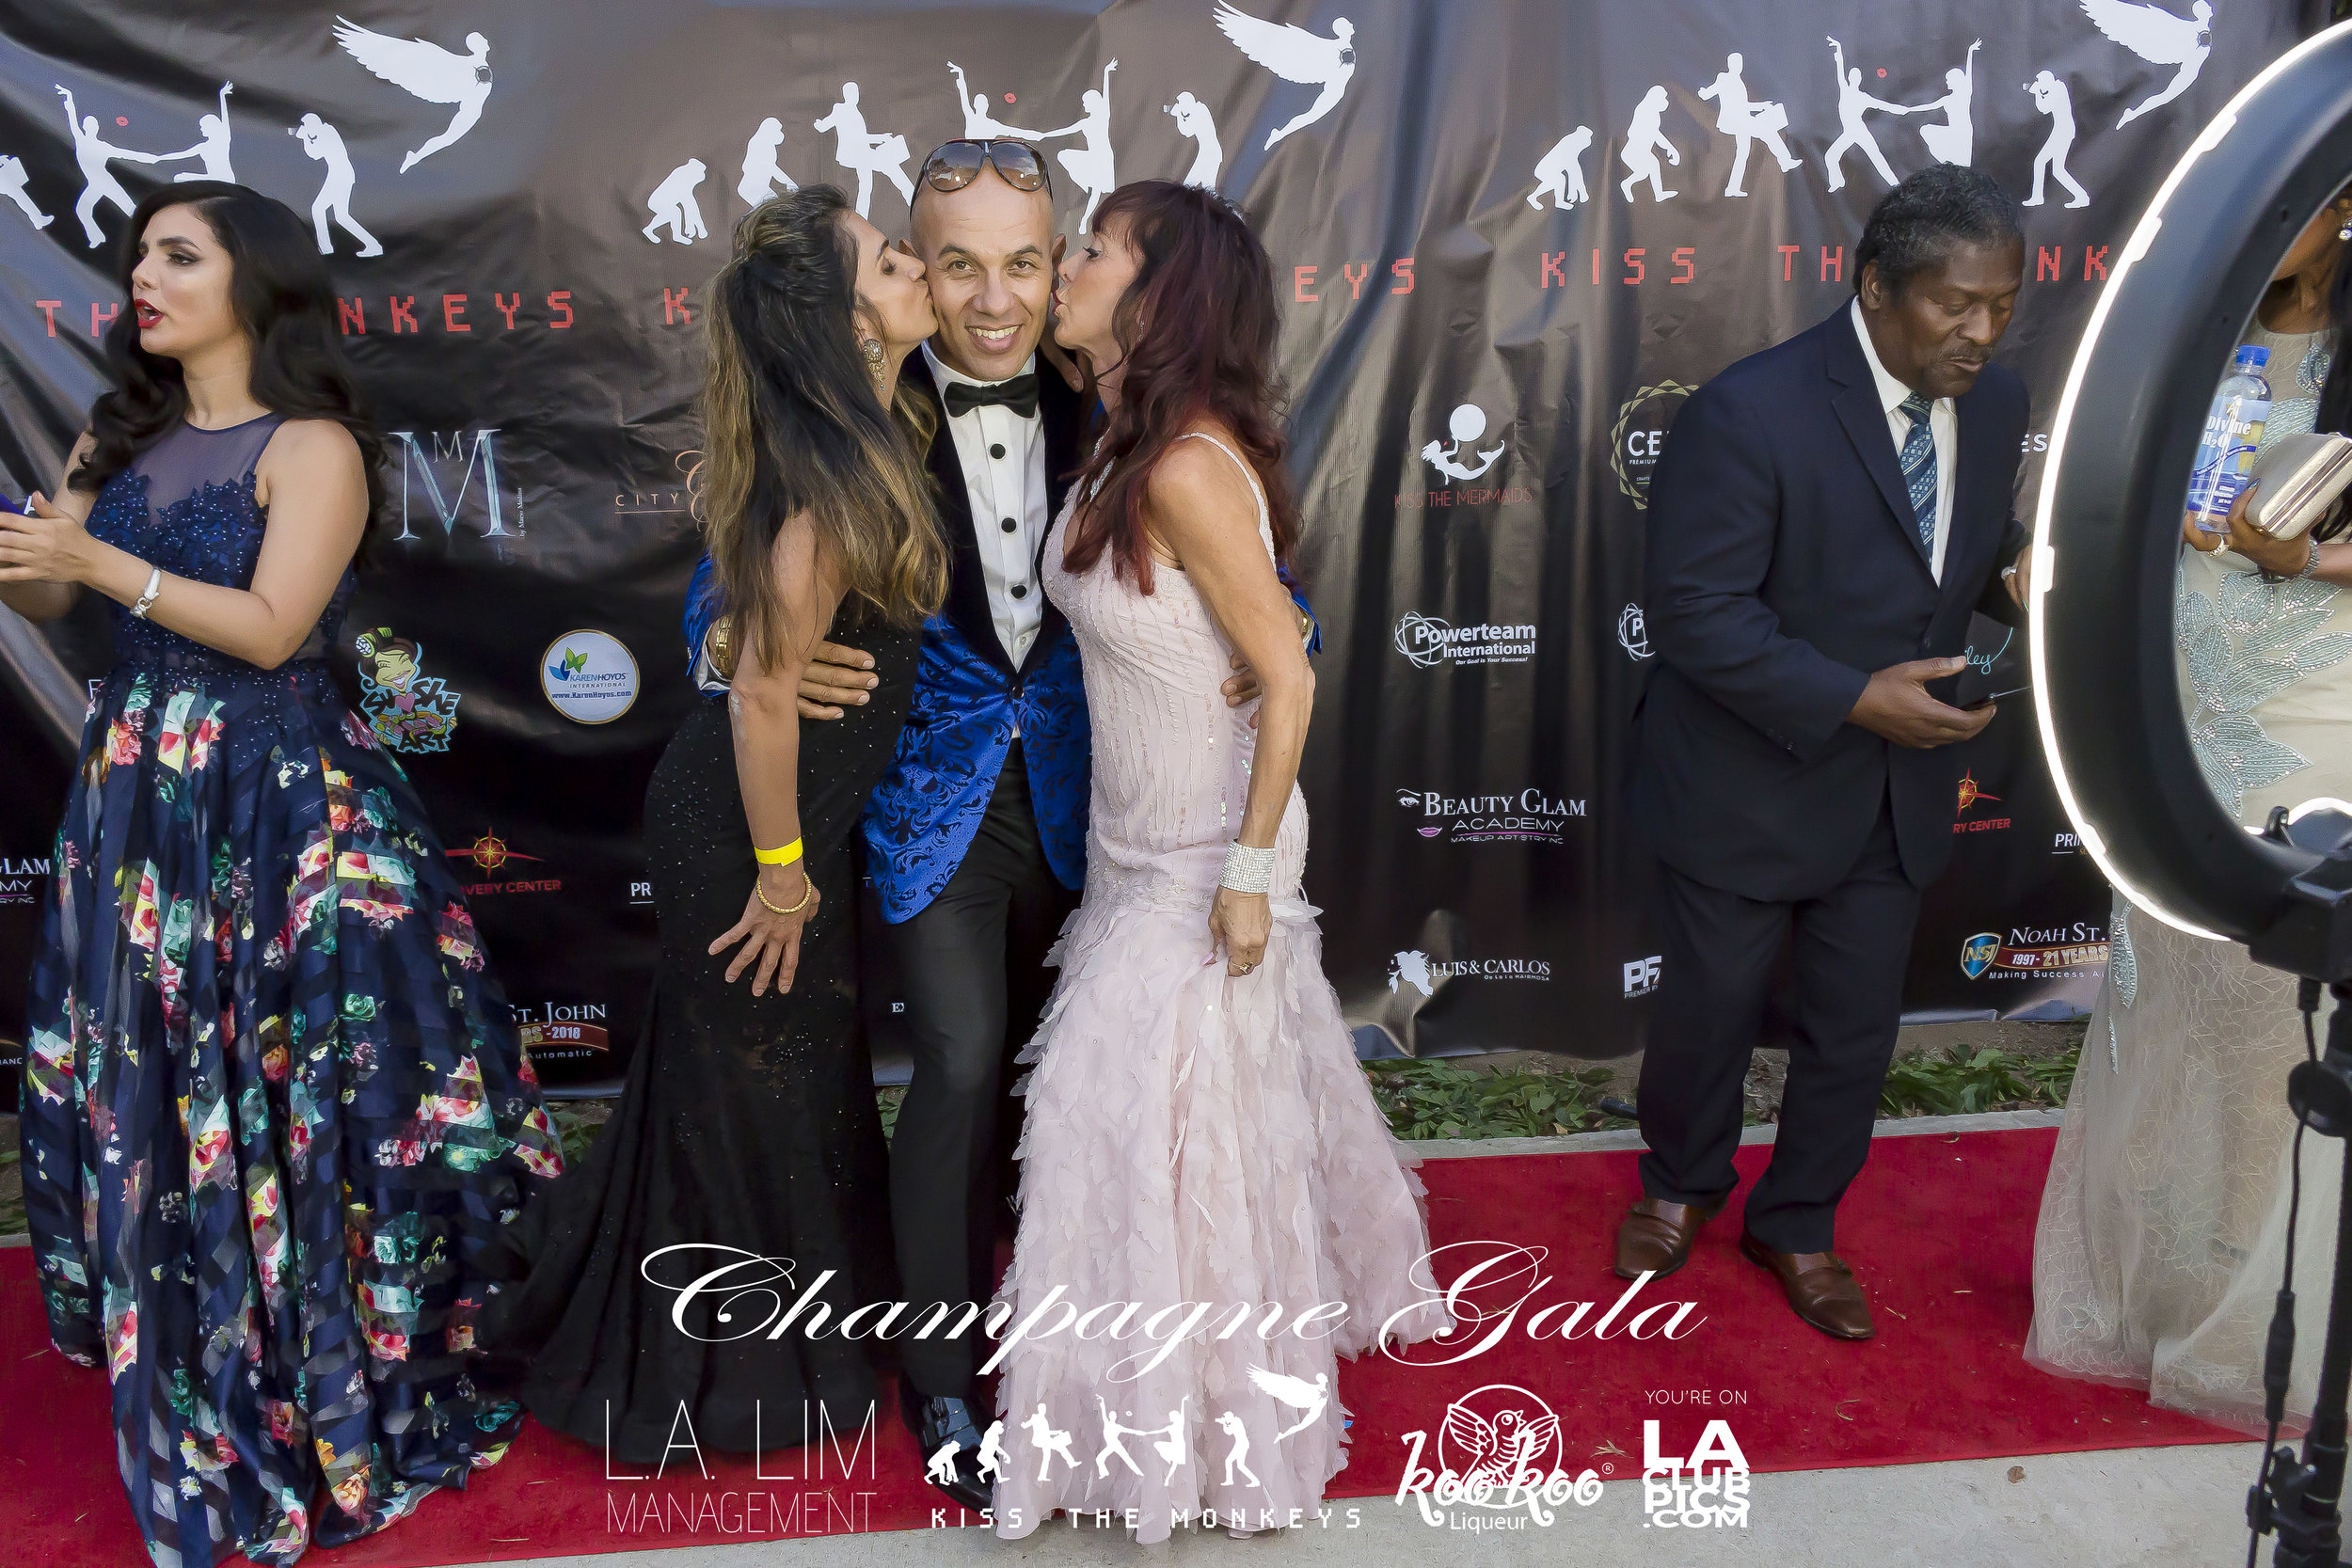 Kiss The Monkeys - Champagne Gala - 07-21-18_141.jpg